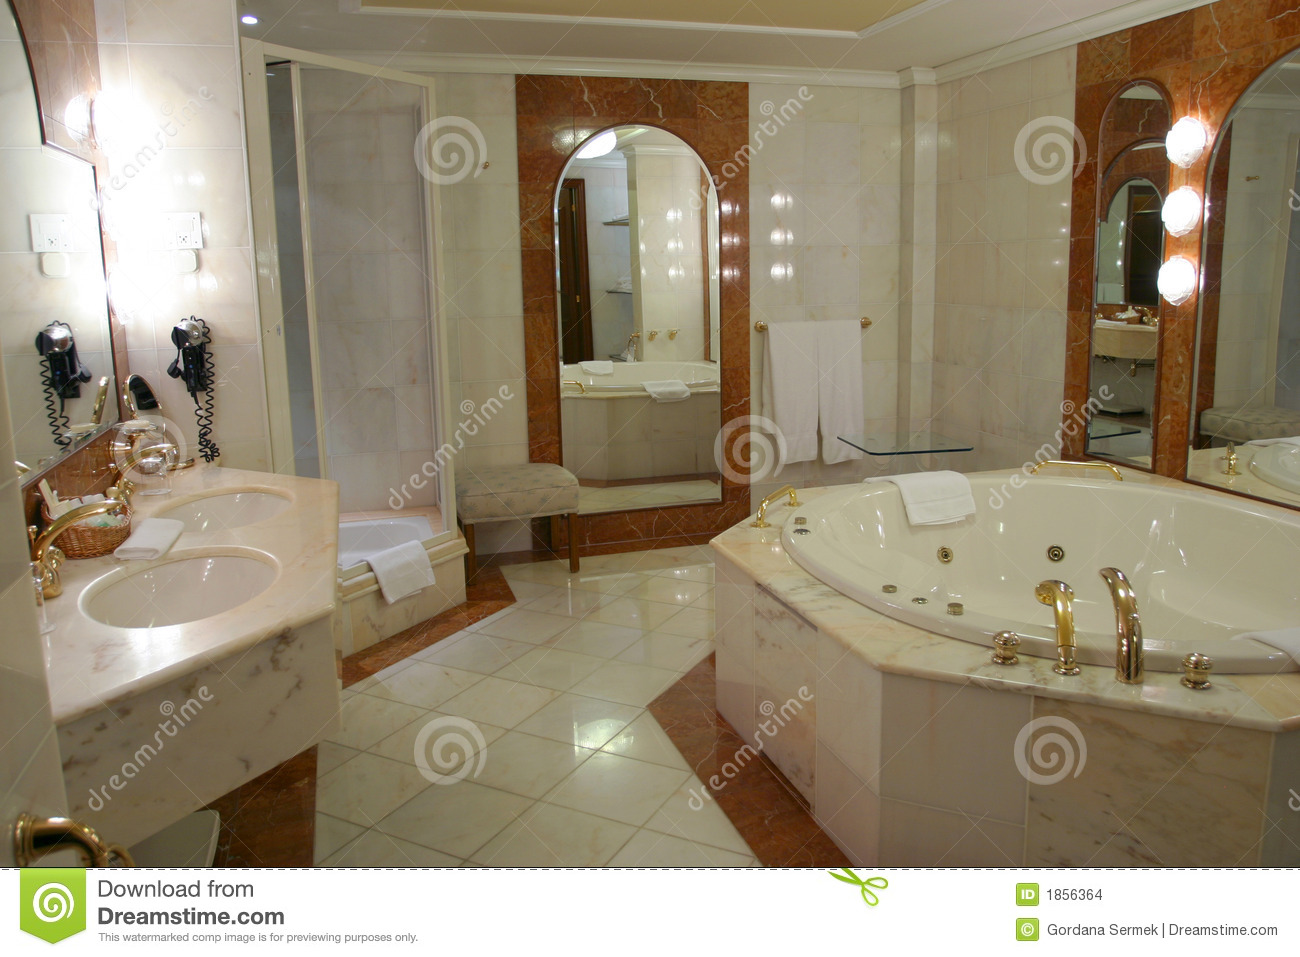 Modern and spacious bathroom stock photo image of for Imagenes de banos decorados